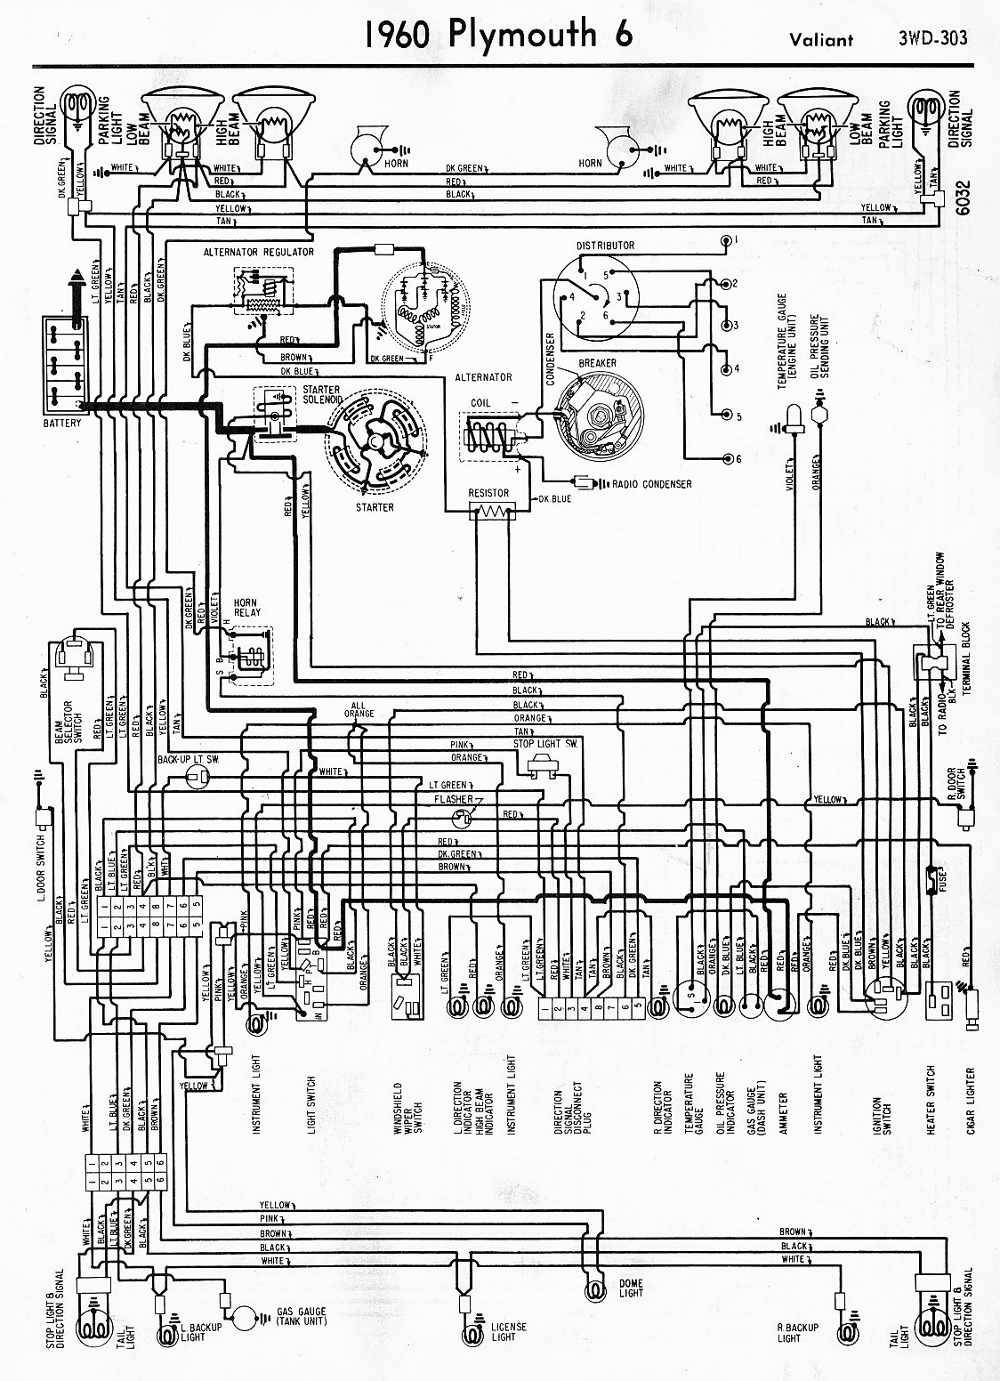 medium resolution of chrysler valiant wiring diagram simple wiring diagram dodge dakota wiring diagrams 1966 plymouth valiant wiring diagram